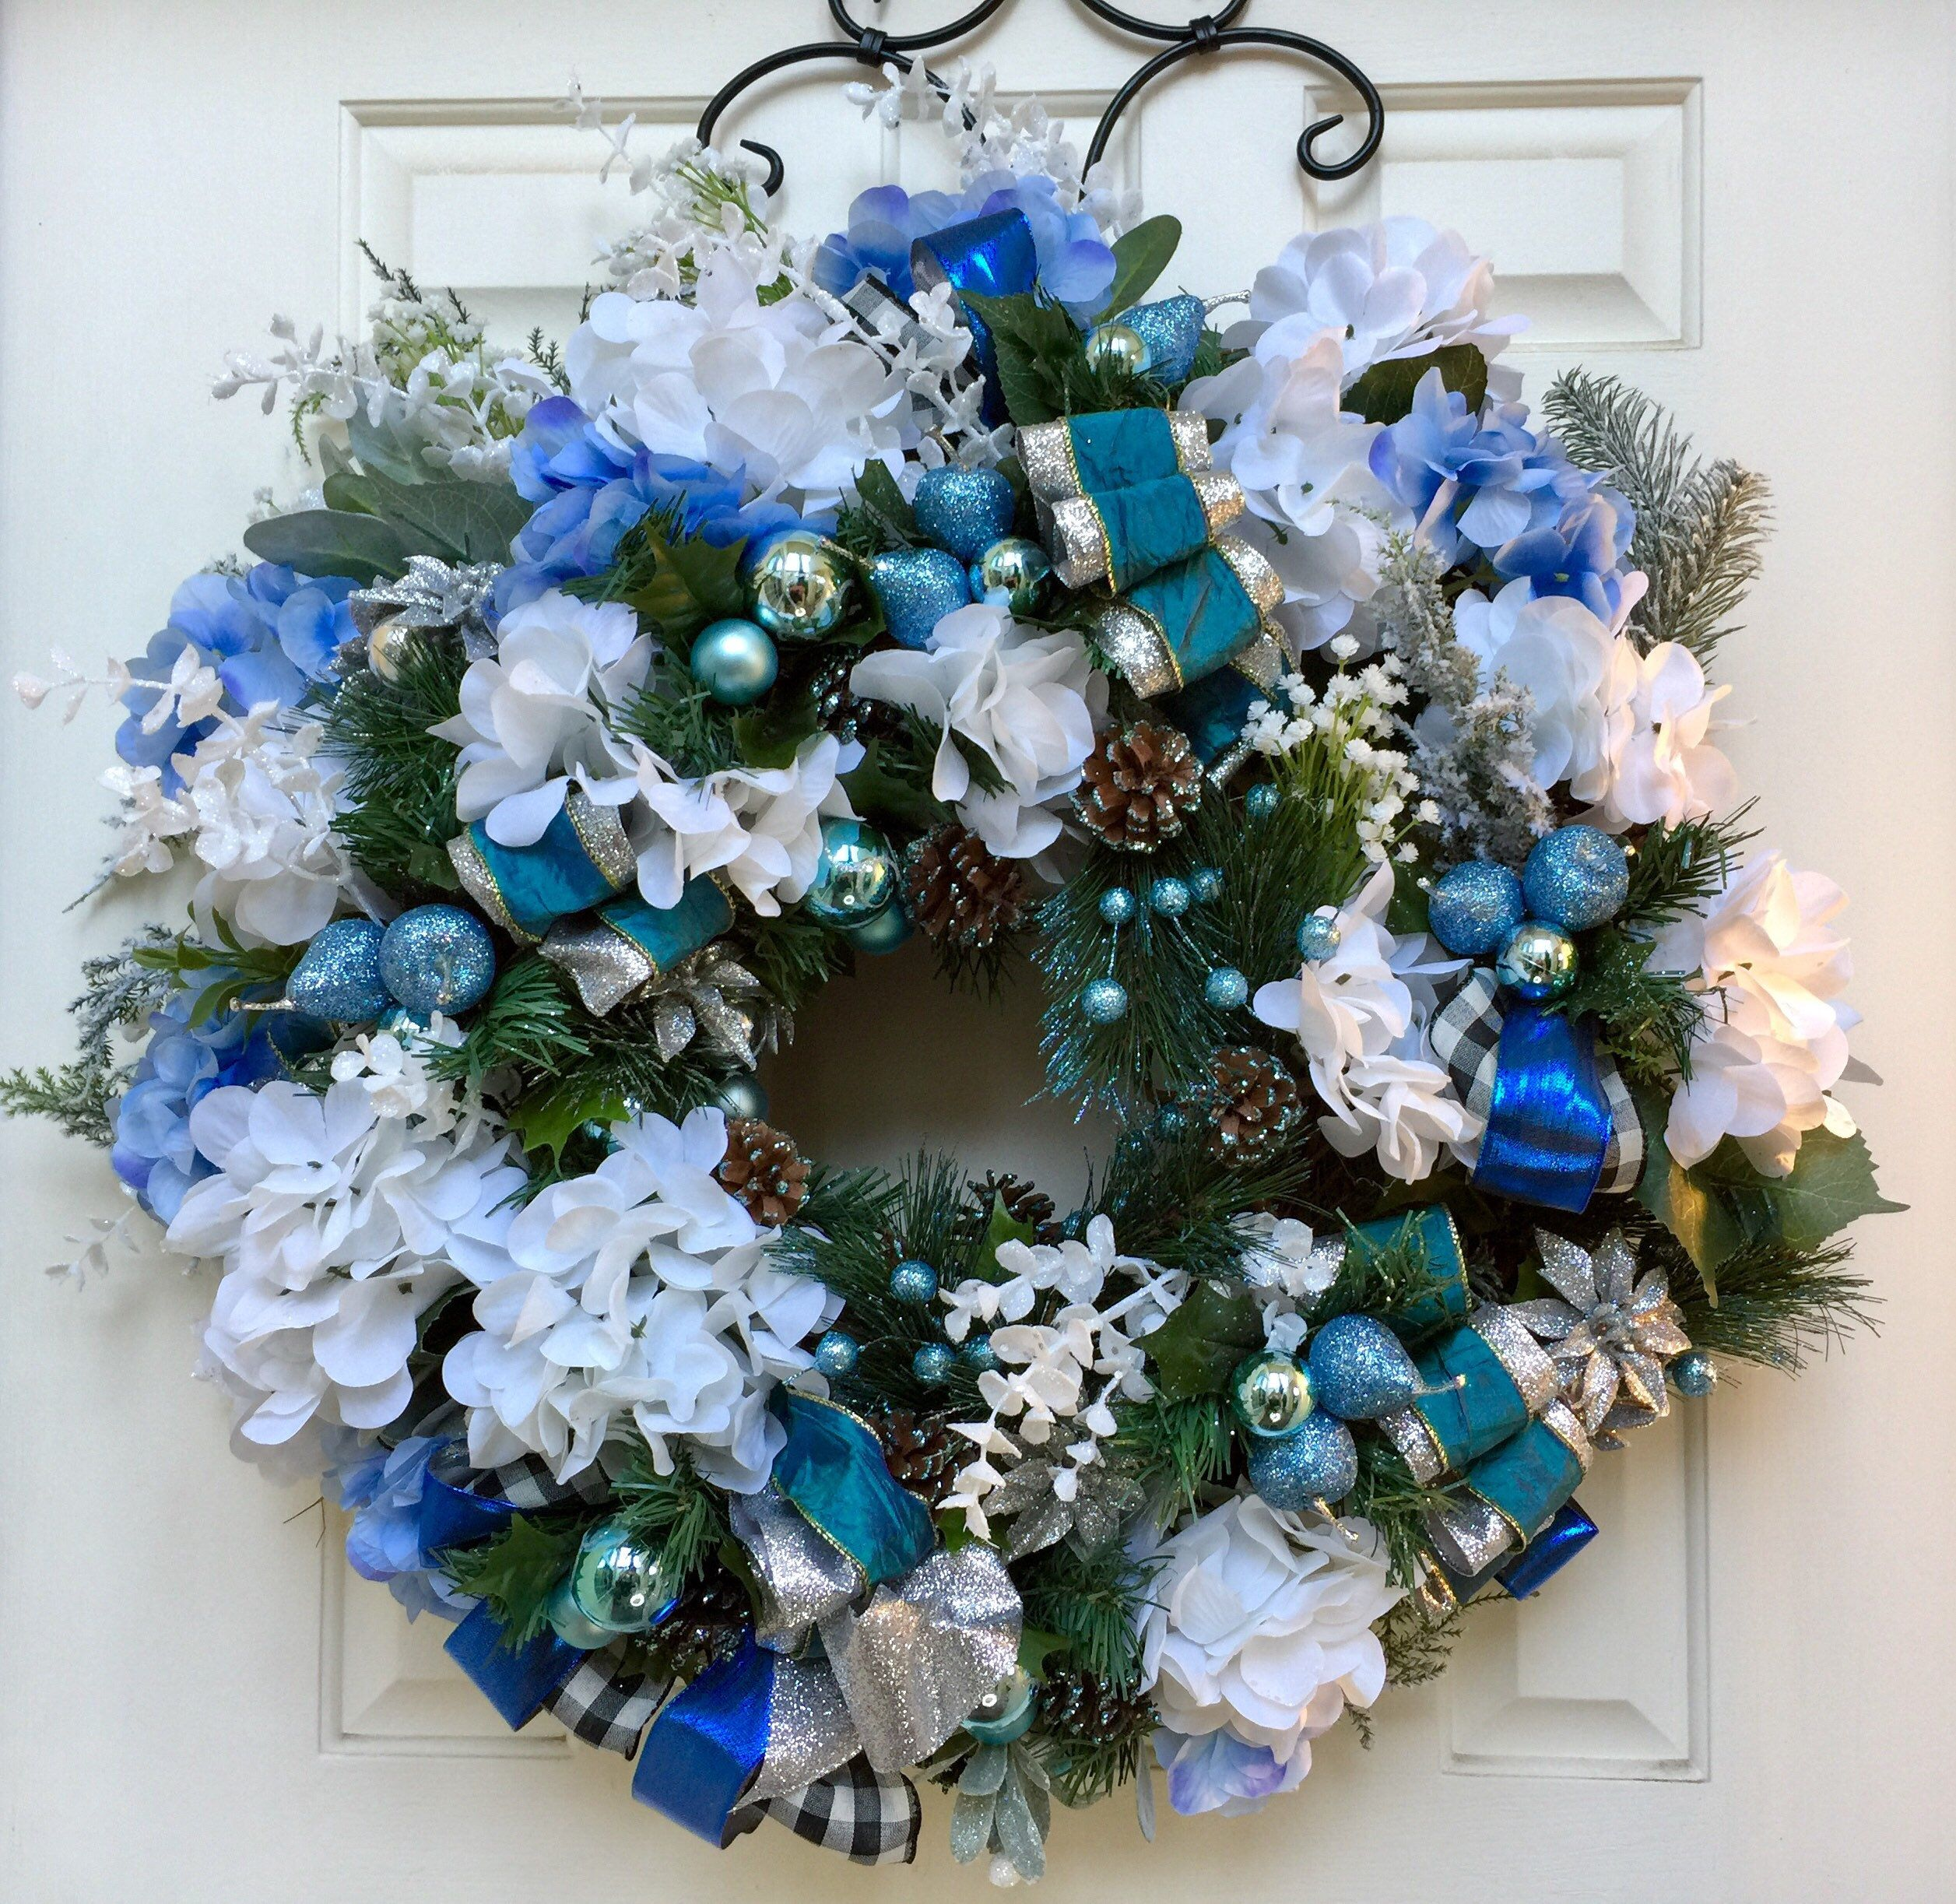 Blue And White Hydrangea Wreath For The